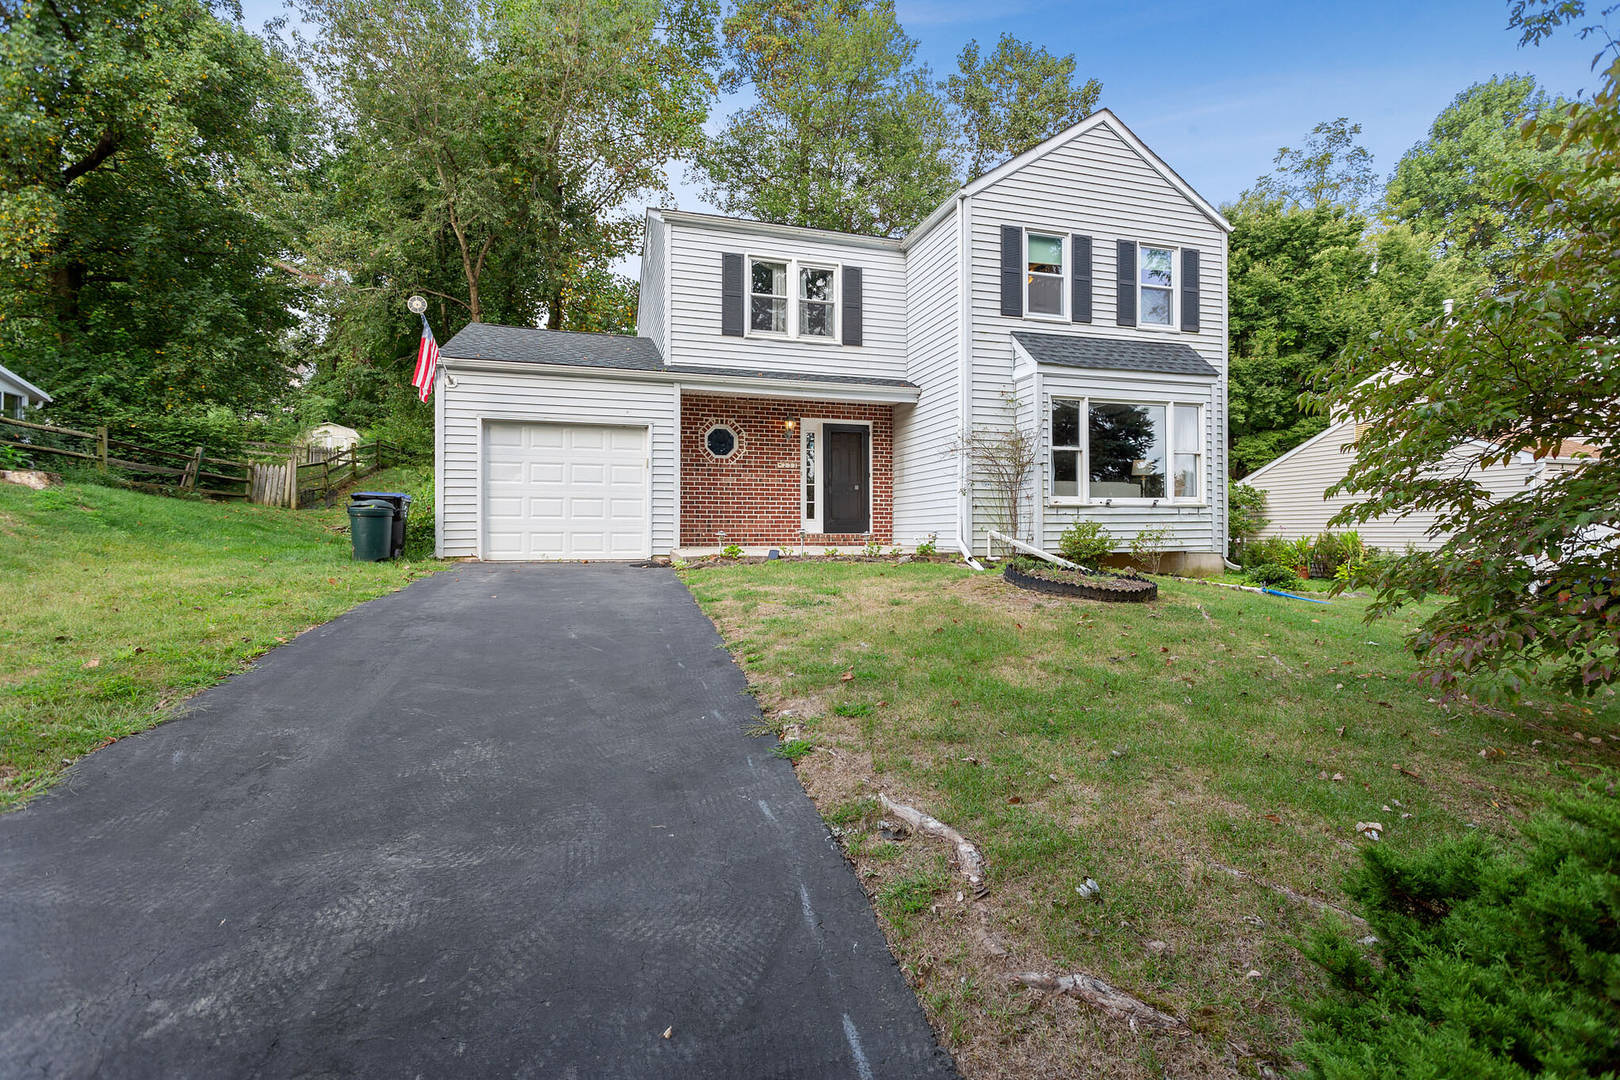 233 Bridge Rd Marcus Hook, PA 19061